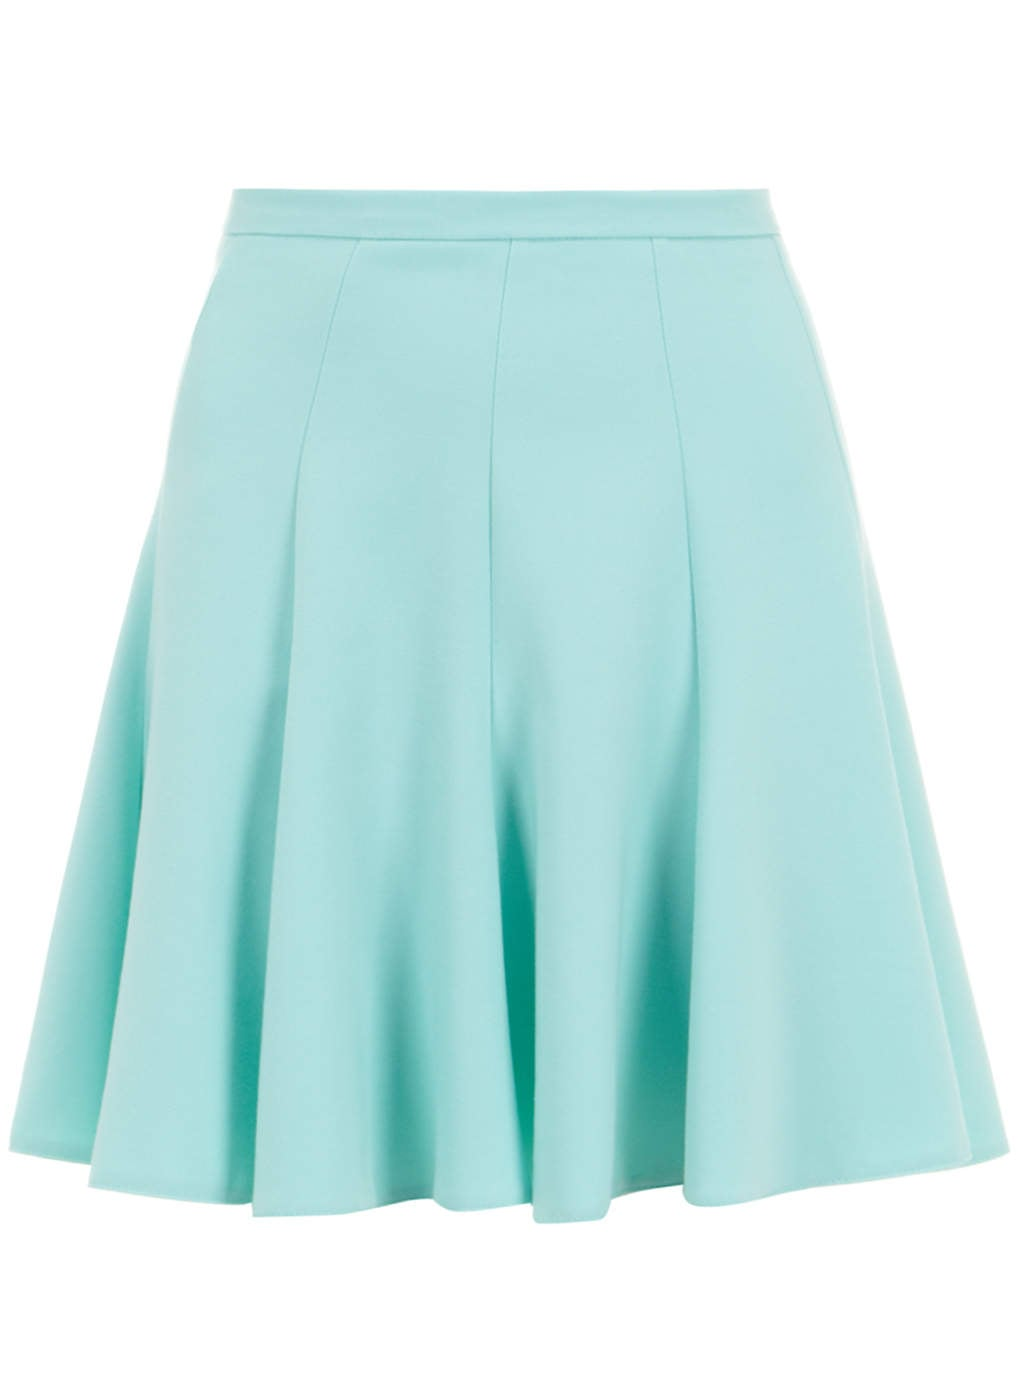 Dorothy Perkins Closet Mint Scuba Skirt